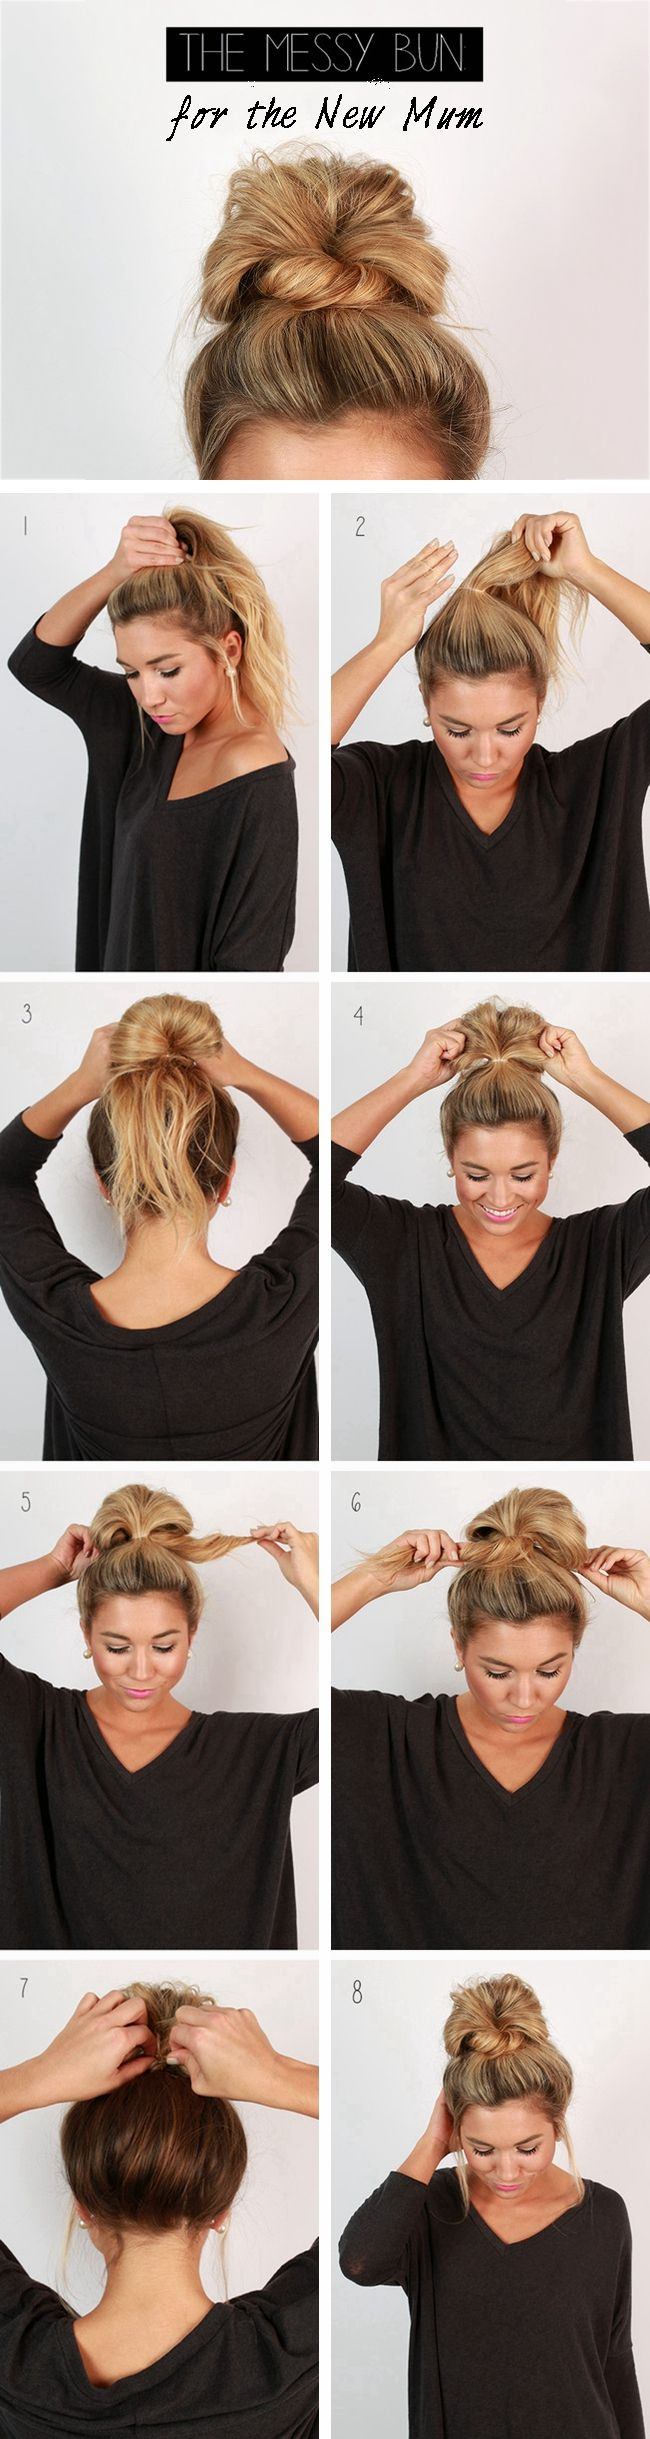 Superb 1000 Ideas About Bun Hairstyles On Pinterest Haircuts Hairstyles For Men Maxibearus